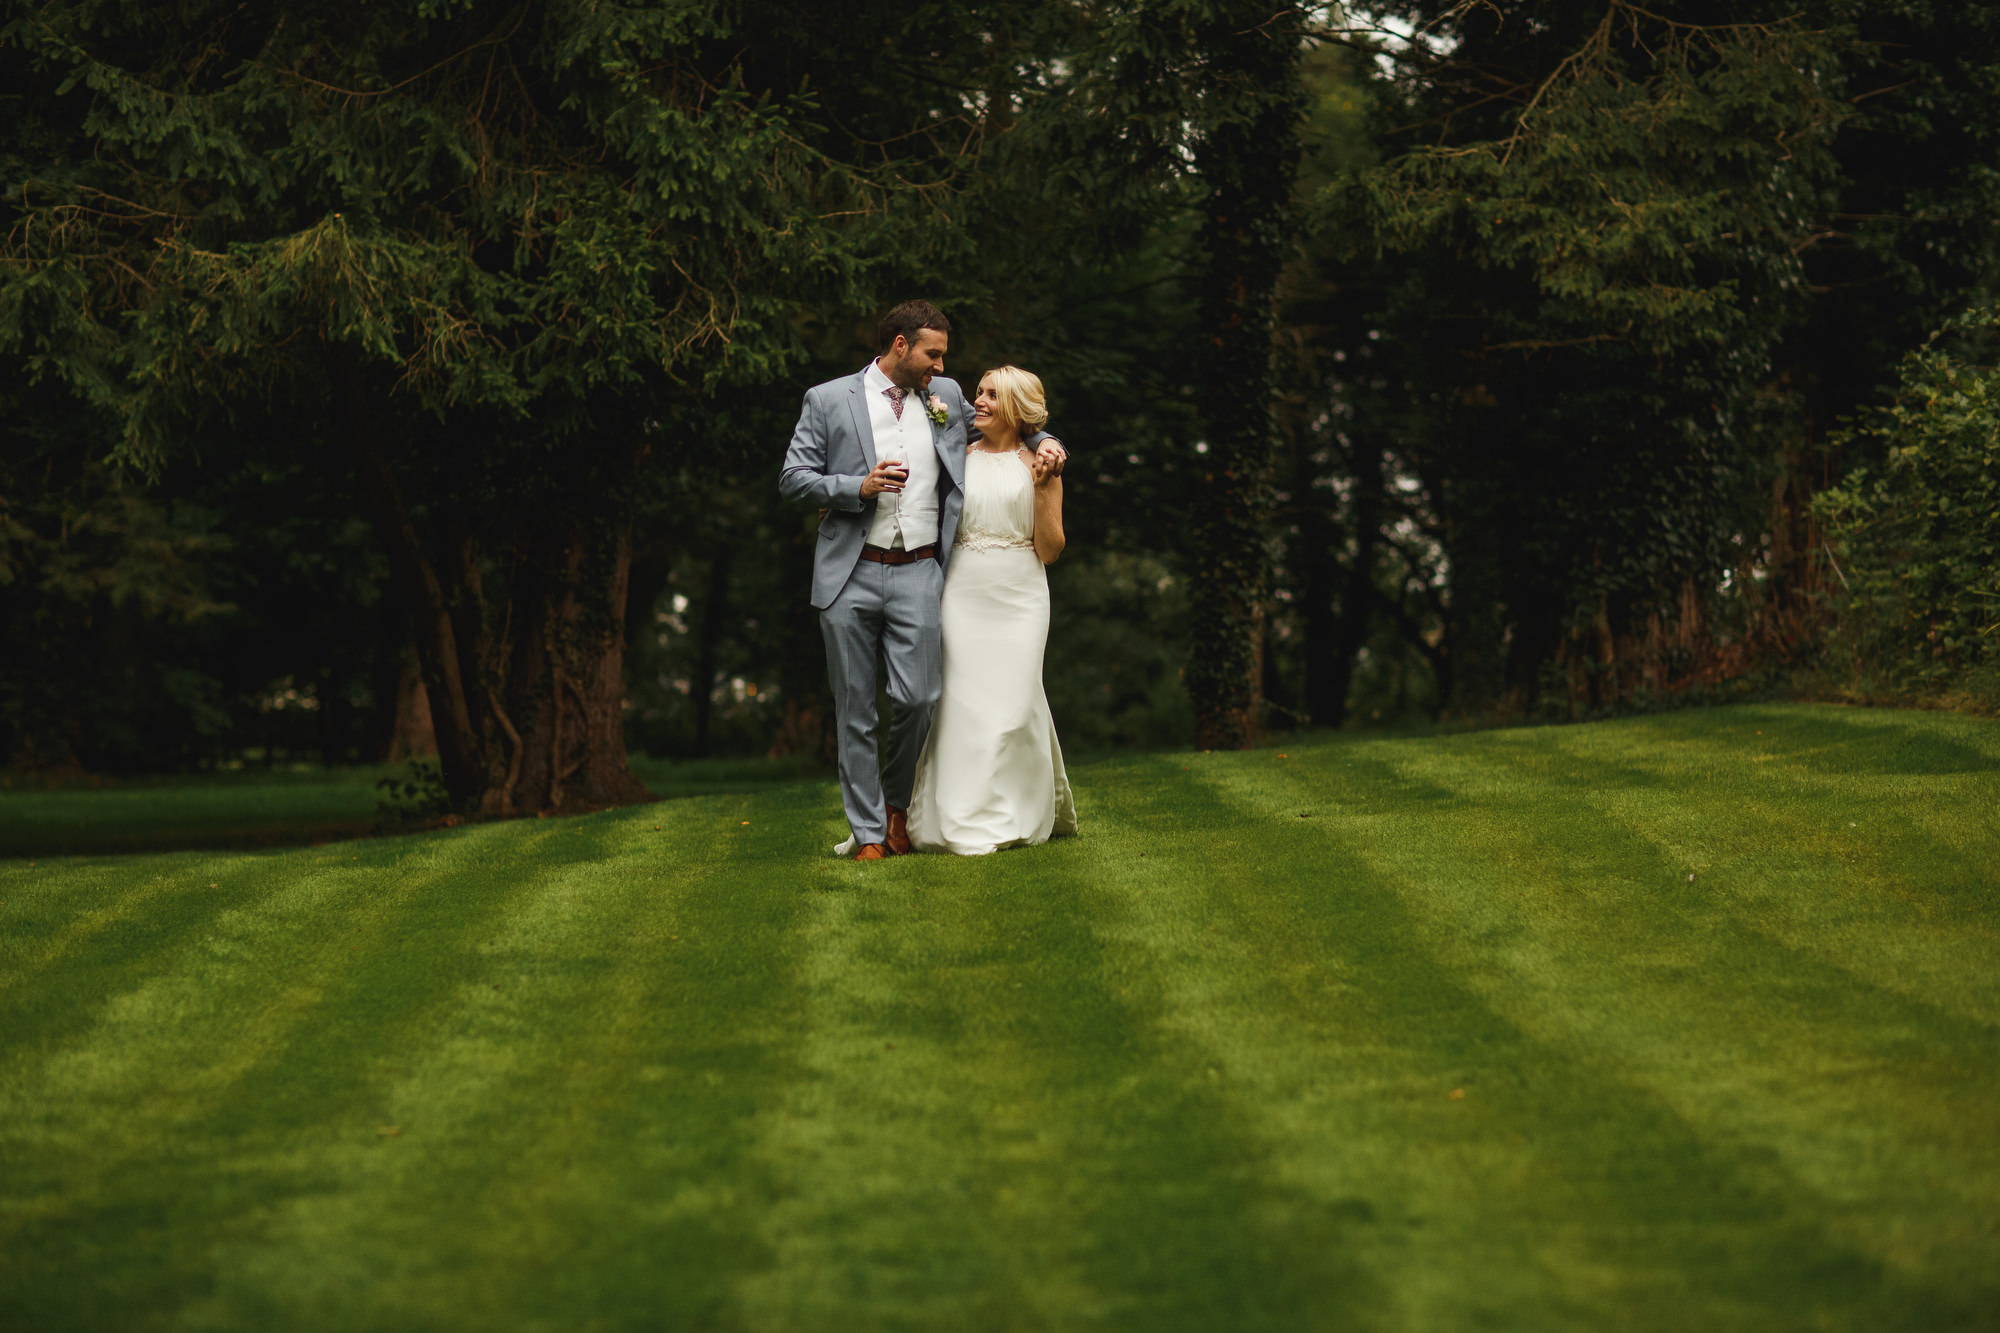 wedding-photography-mitton-hall-76